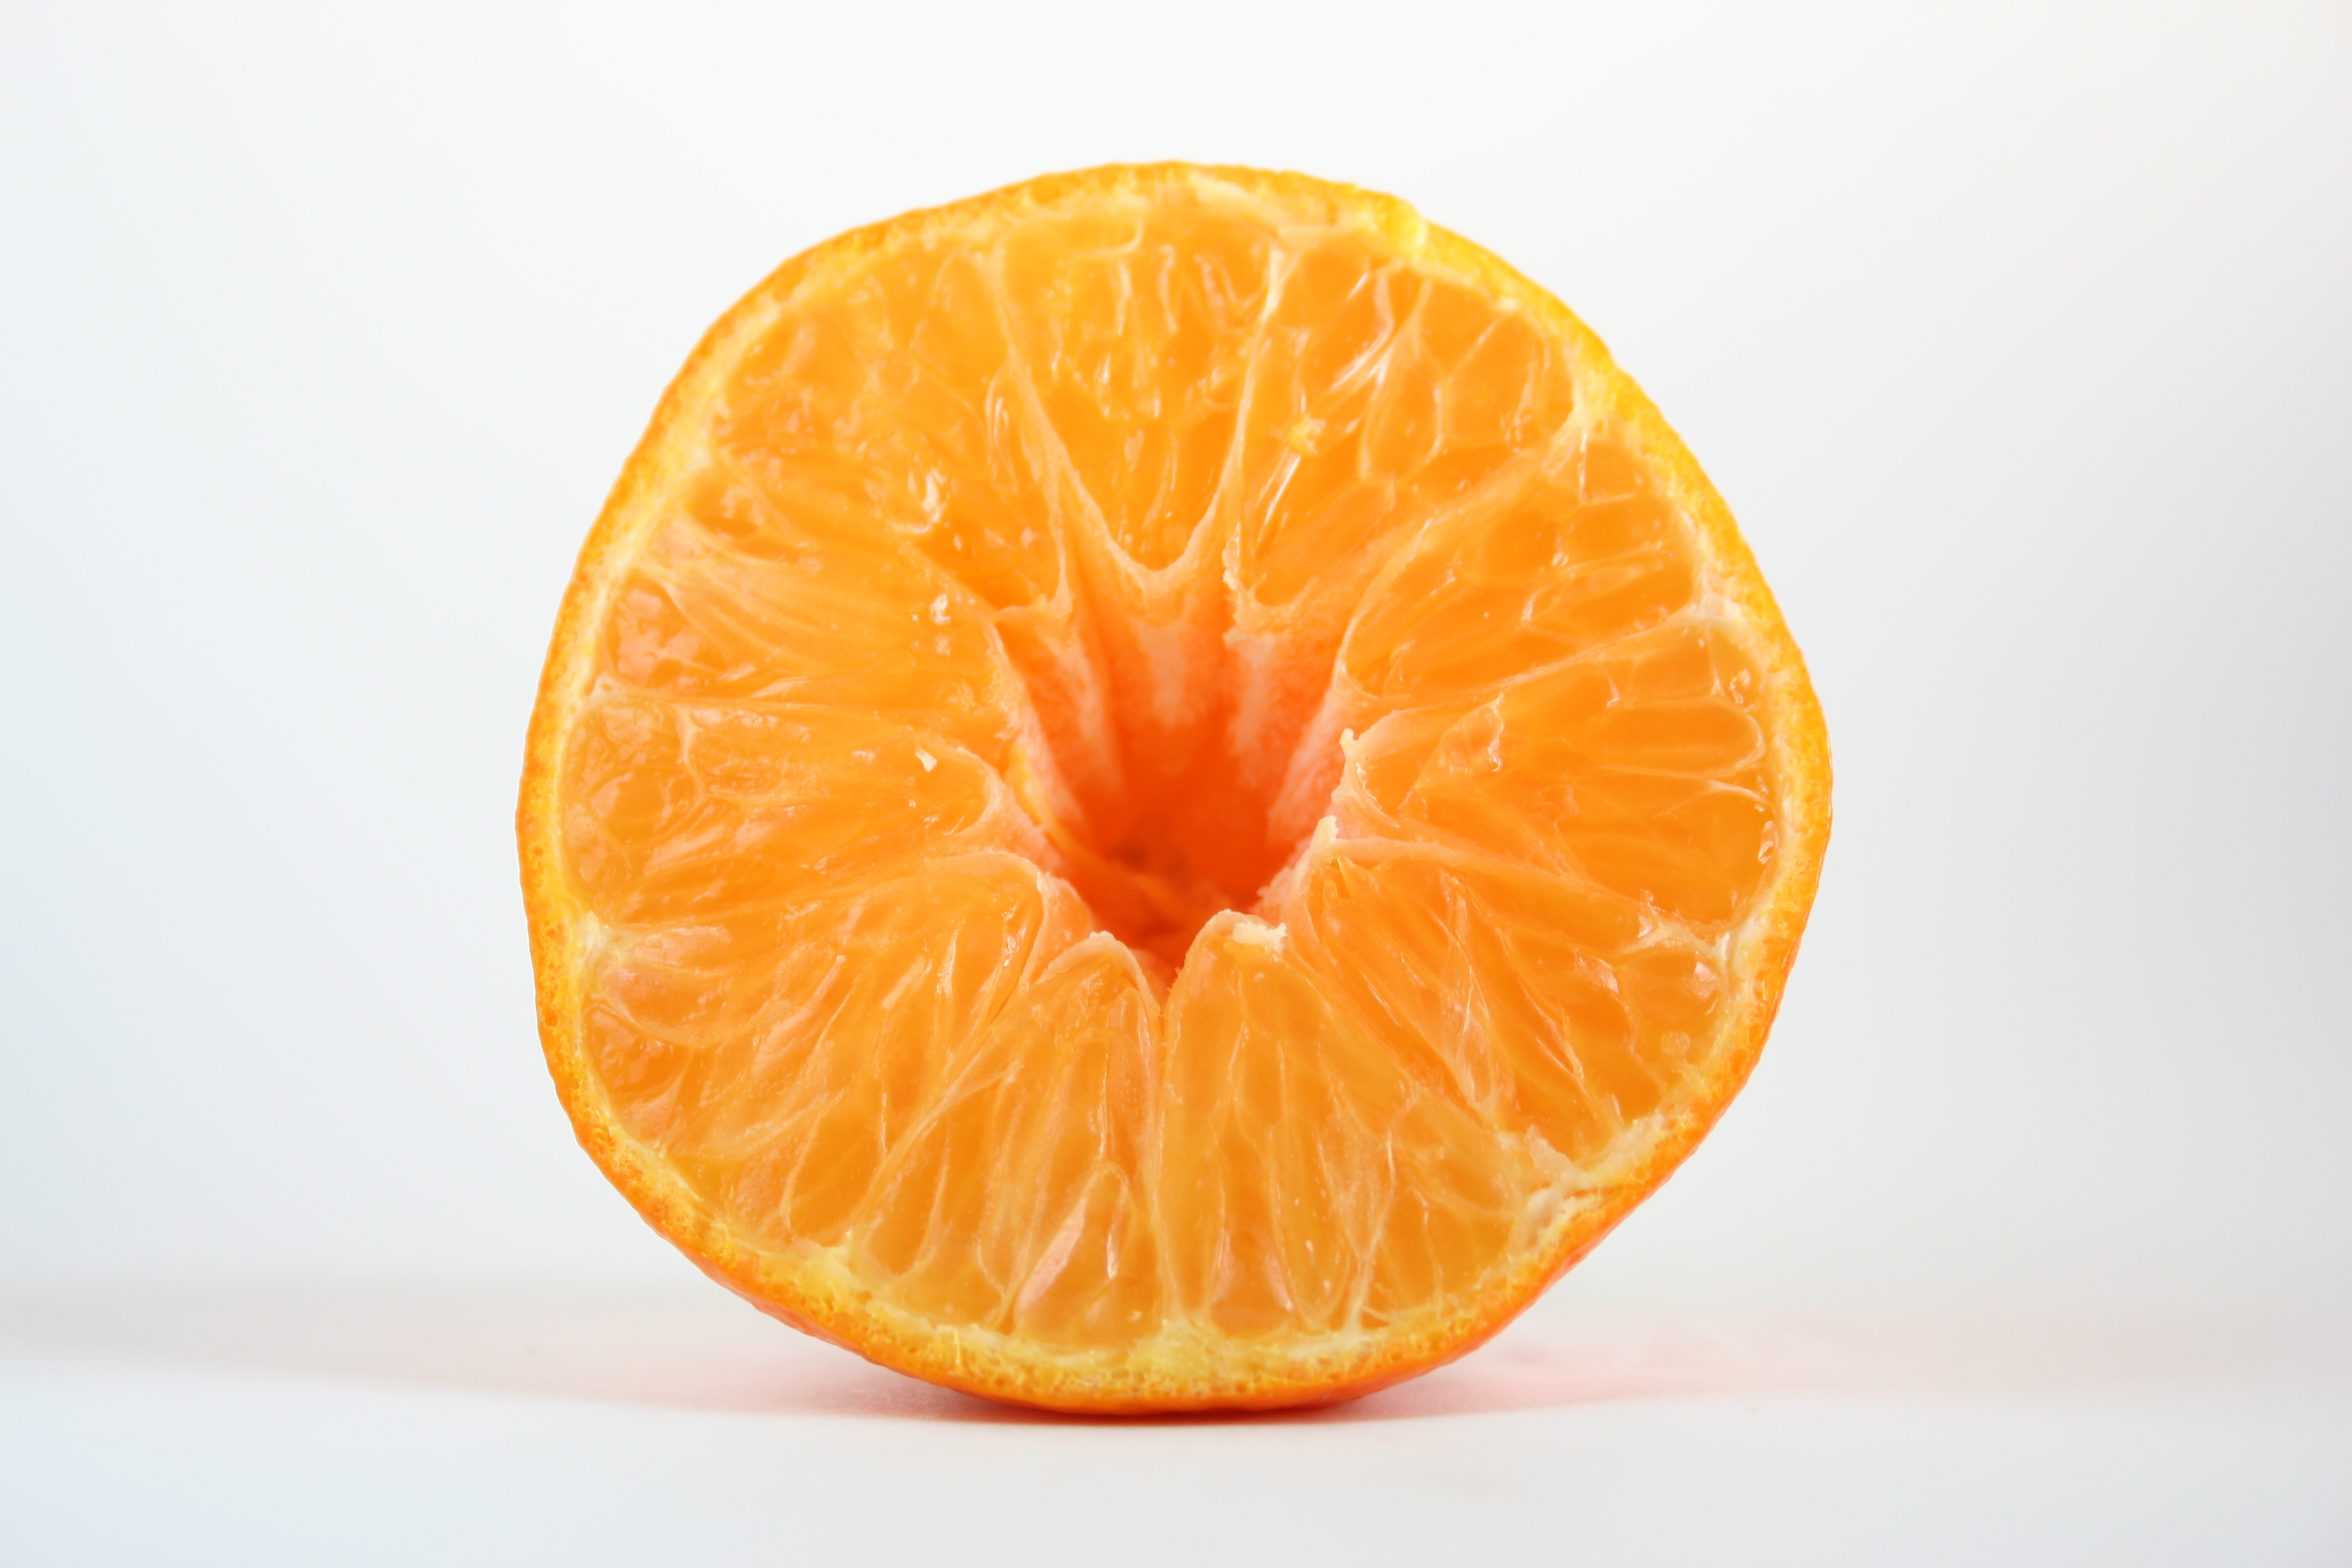 File:Citrus clementine.JPG - Wikimedia Commons